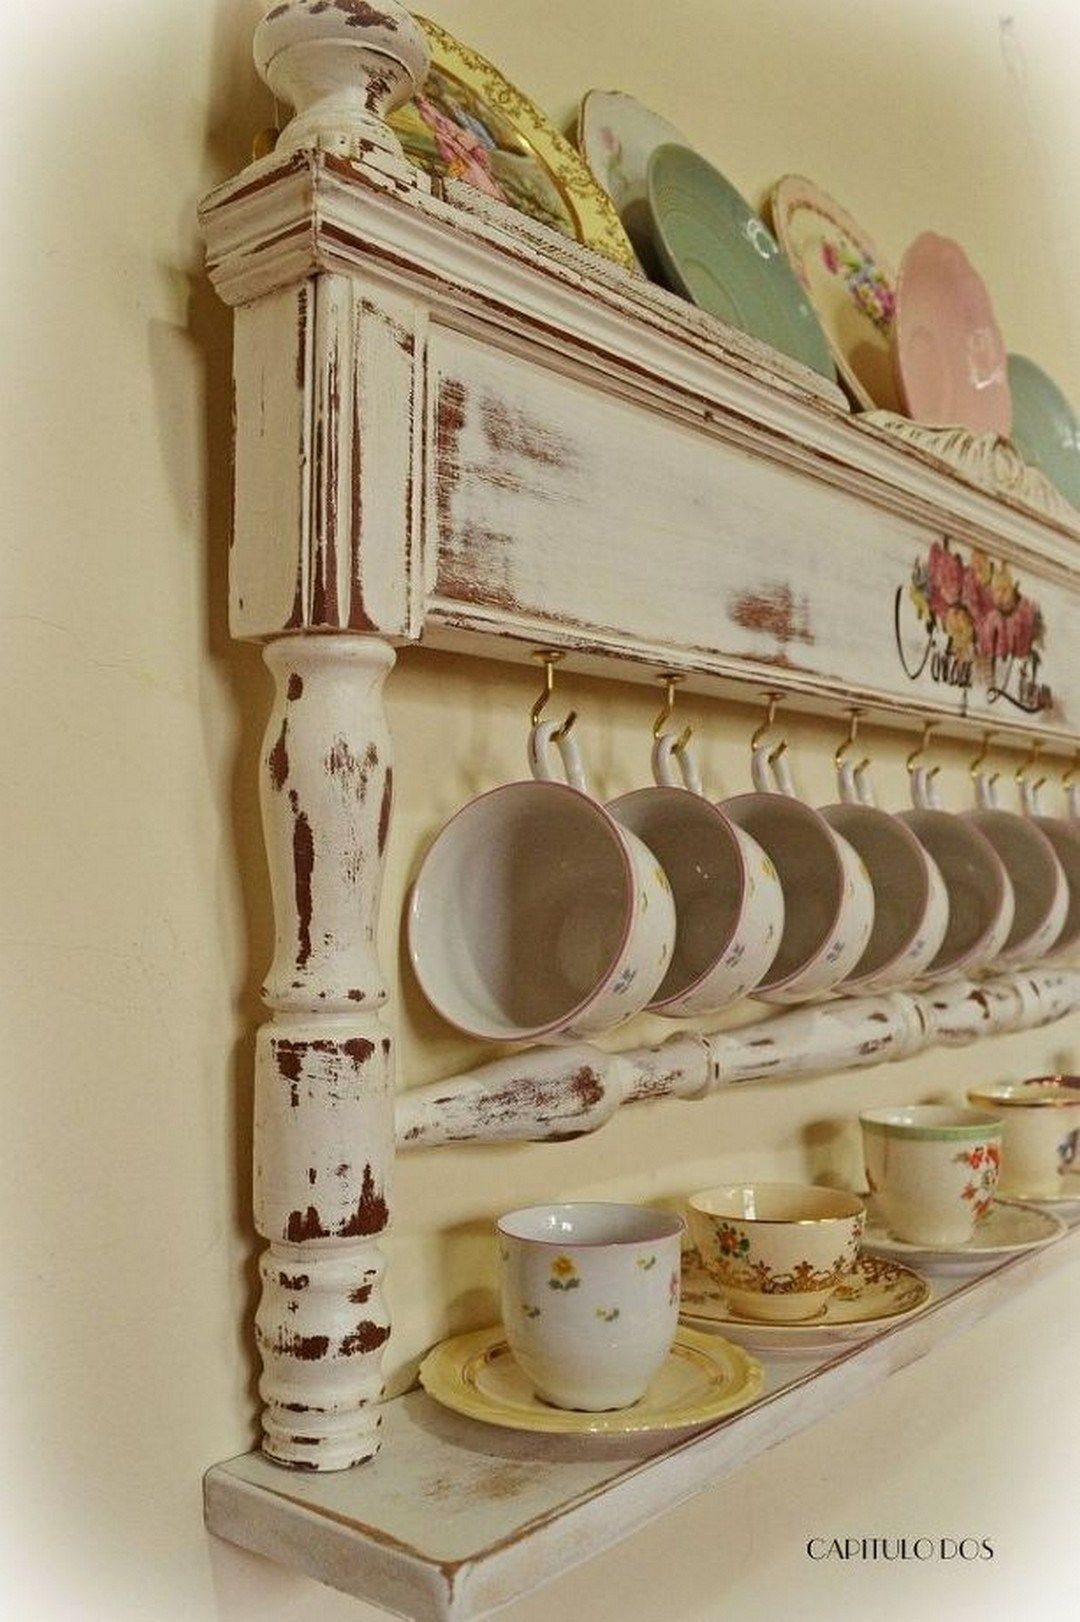 diy upcycled furniture projects and houswares diy upcycled